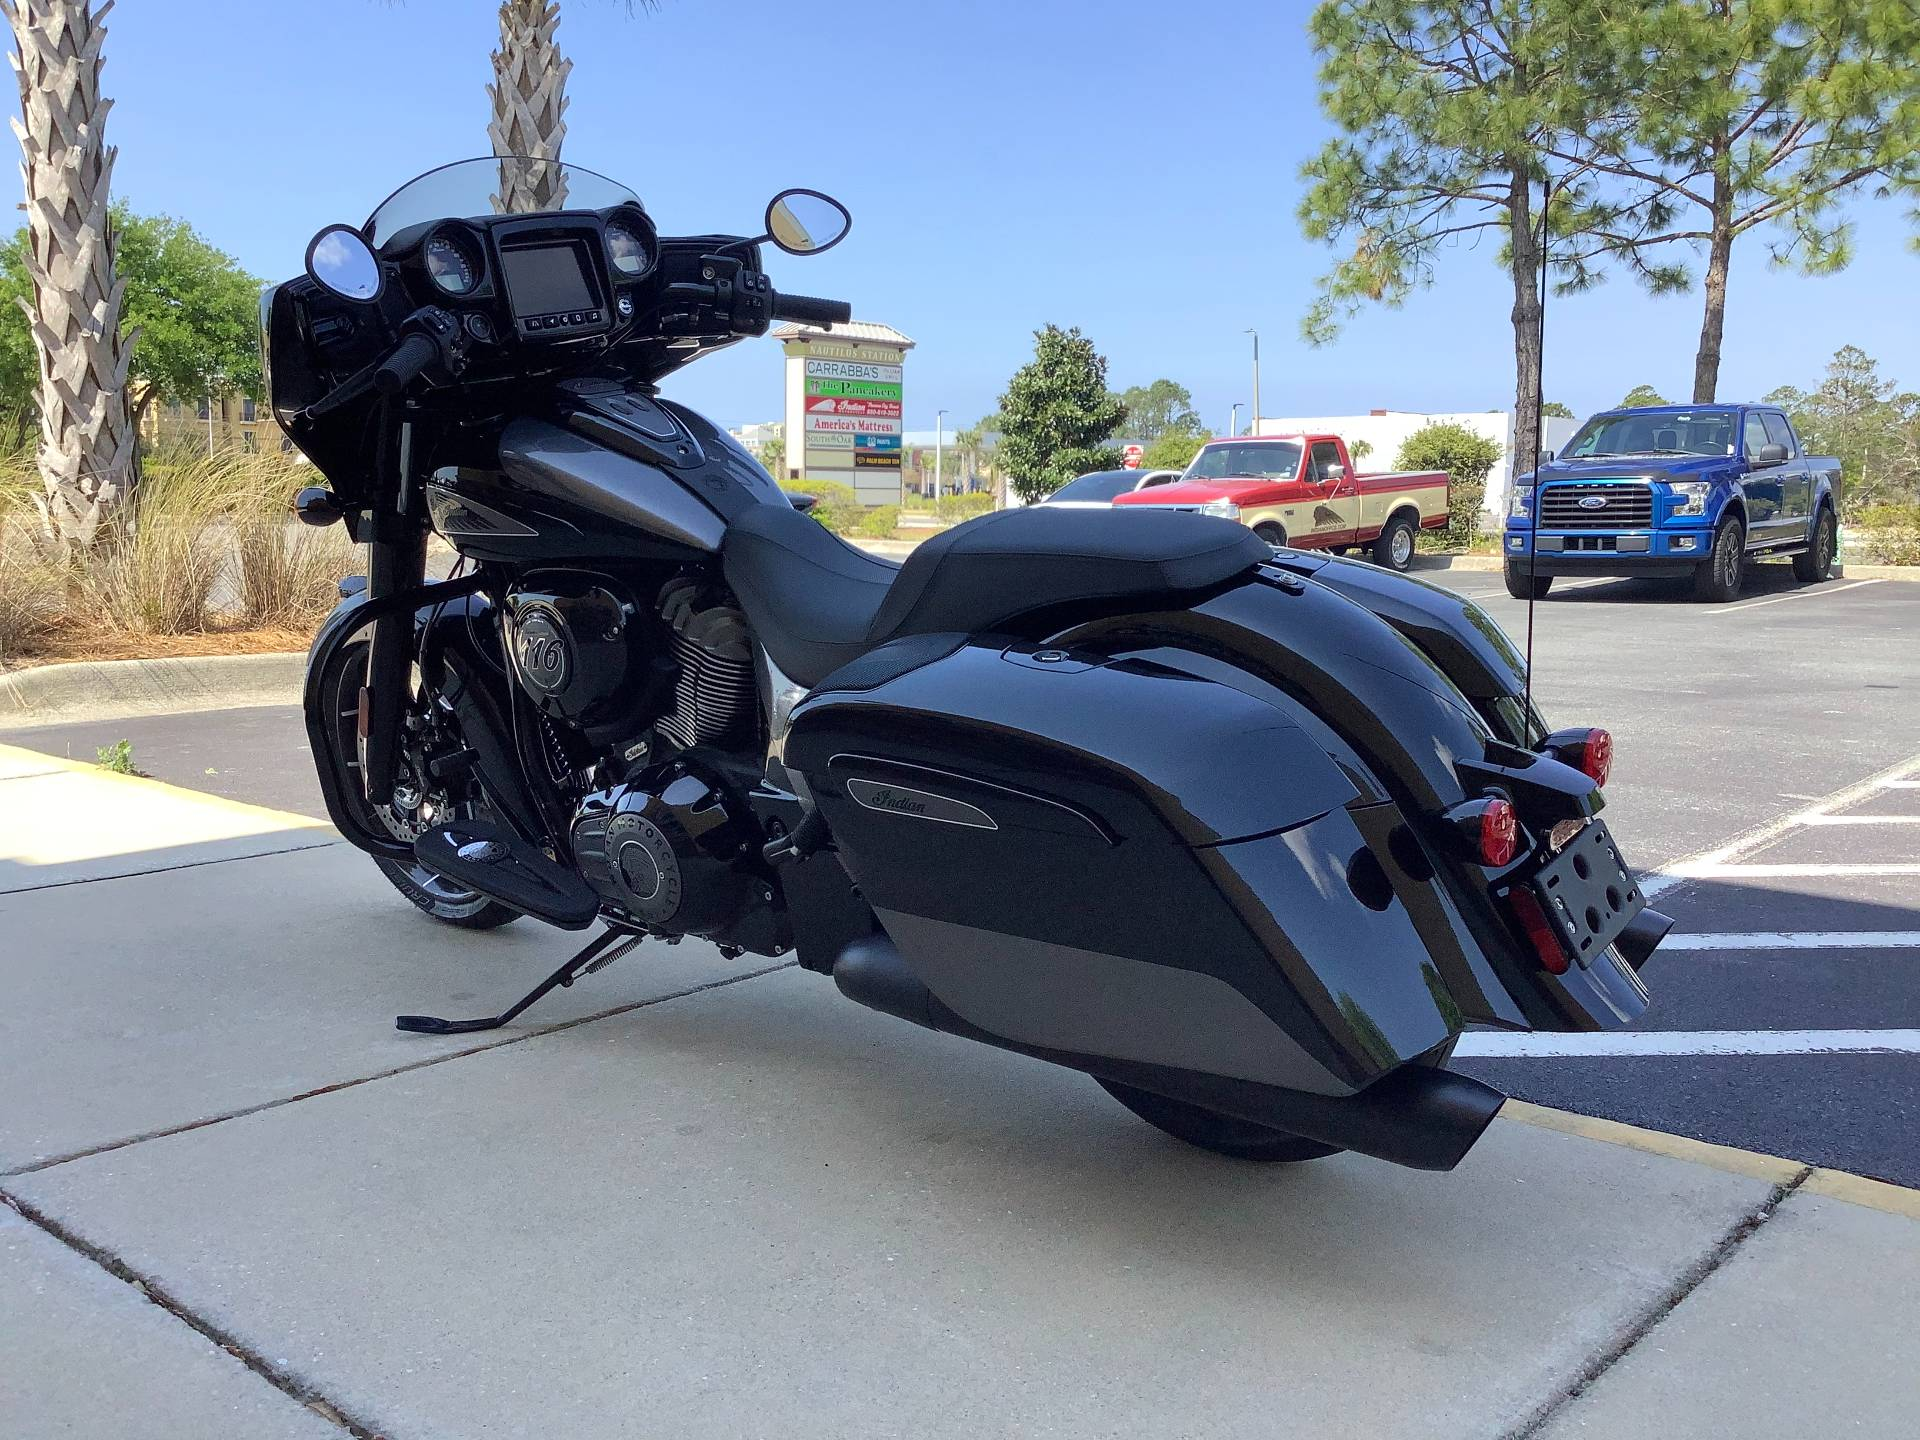 2021 Indian CHIEFTAIN ELITE in Panama City Beach, Florida - Photo 10